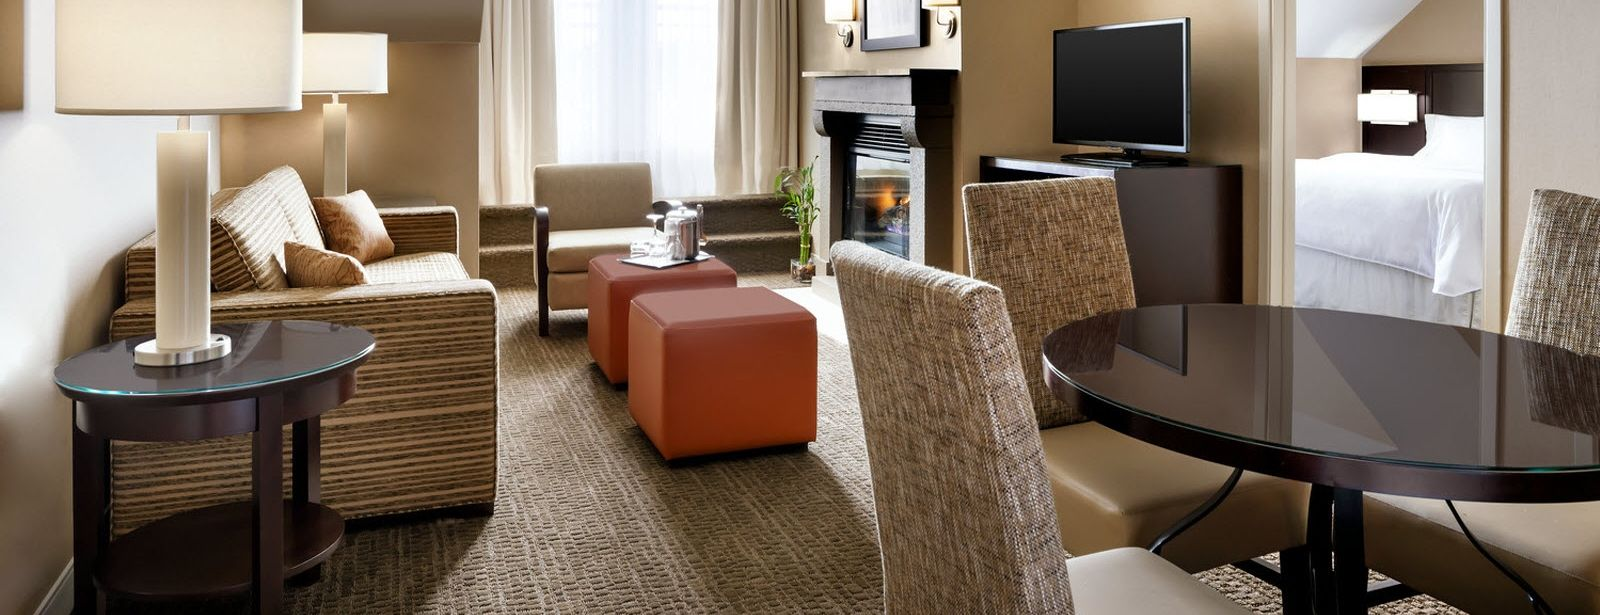 Two Bedroom Suite | Le Westin Resort & Spa, Tremblant, Quebec